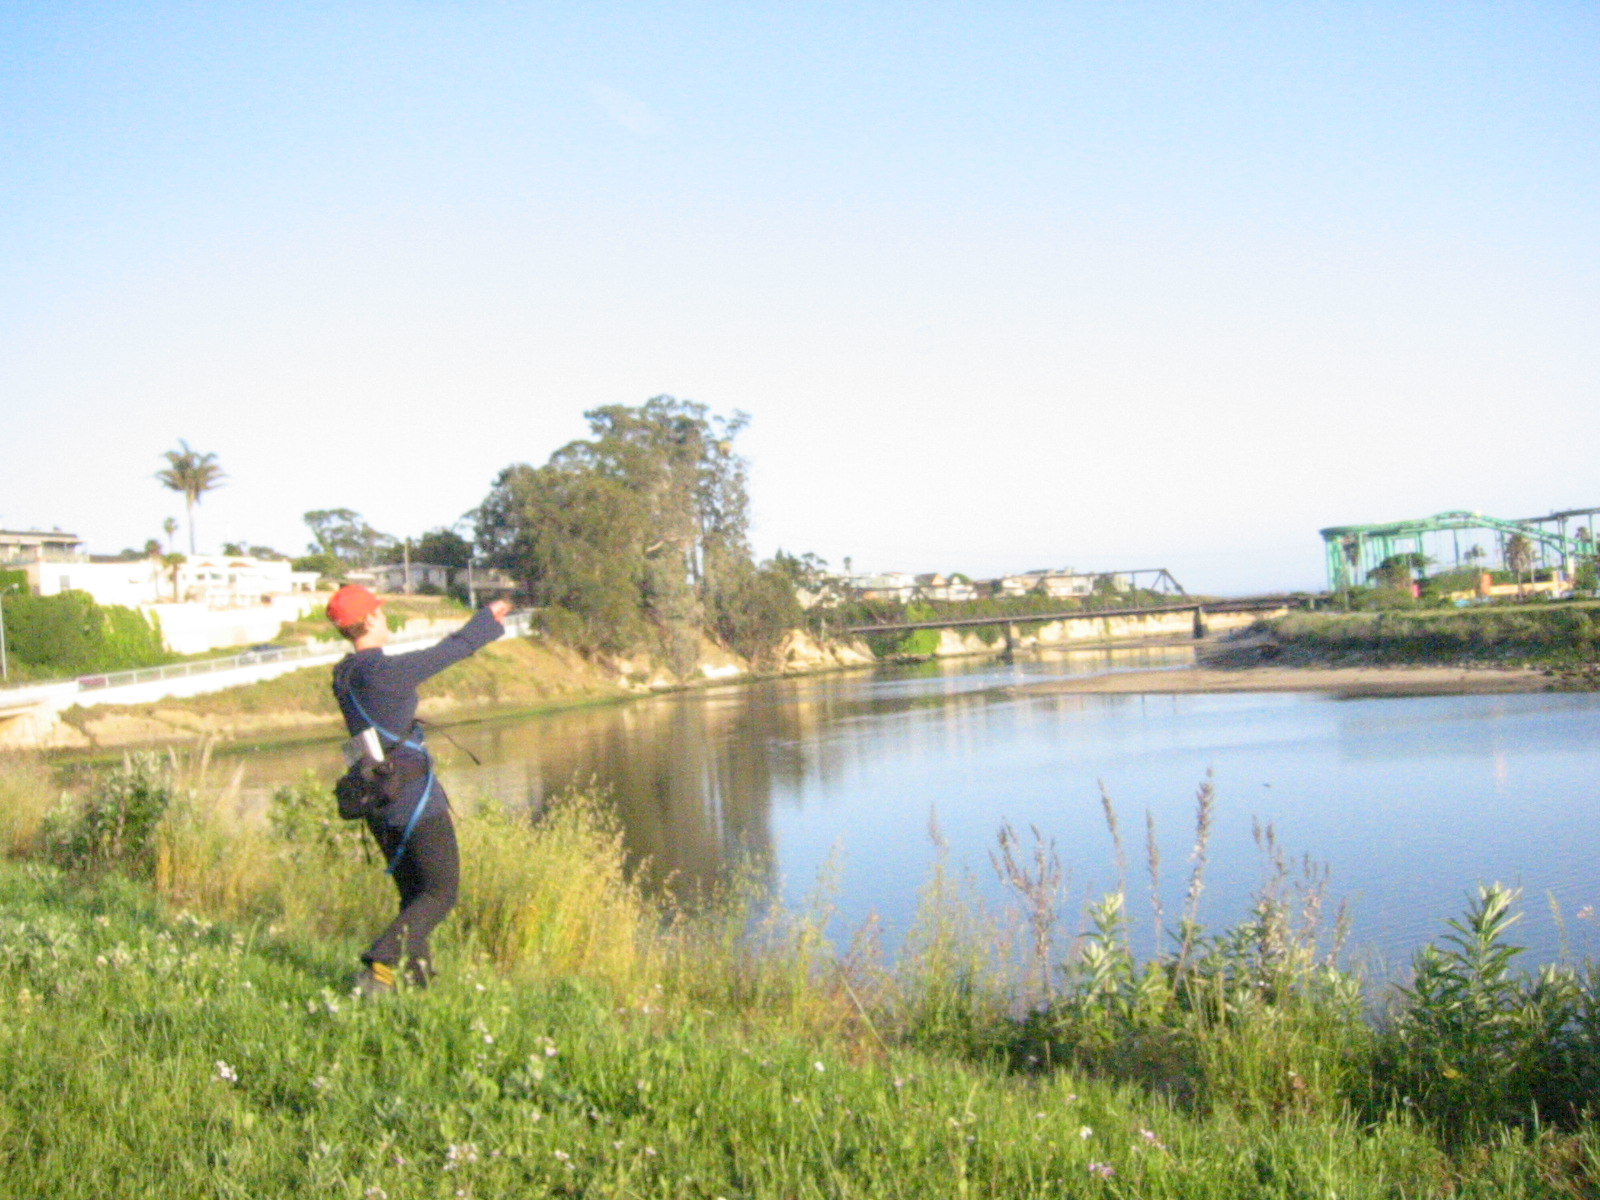 Illegal Throwing of Ball for Dogs at the San Lorenzo River